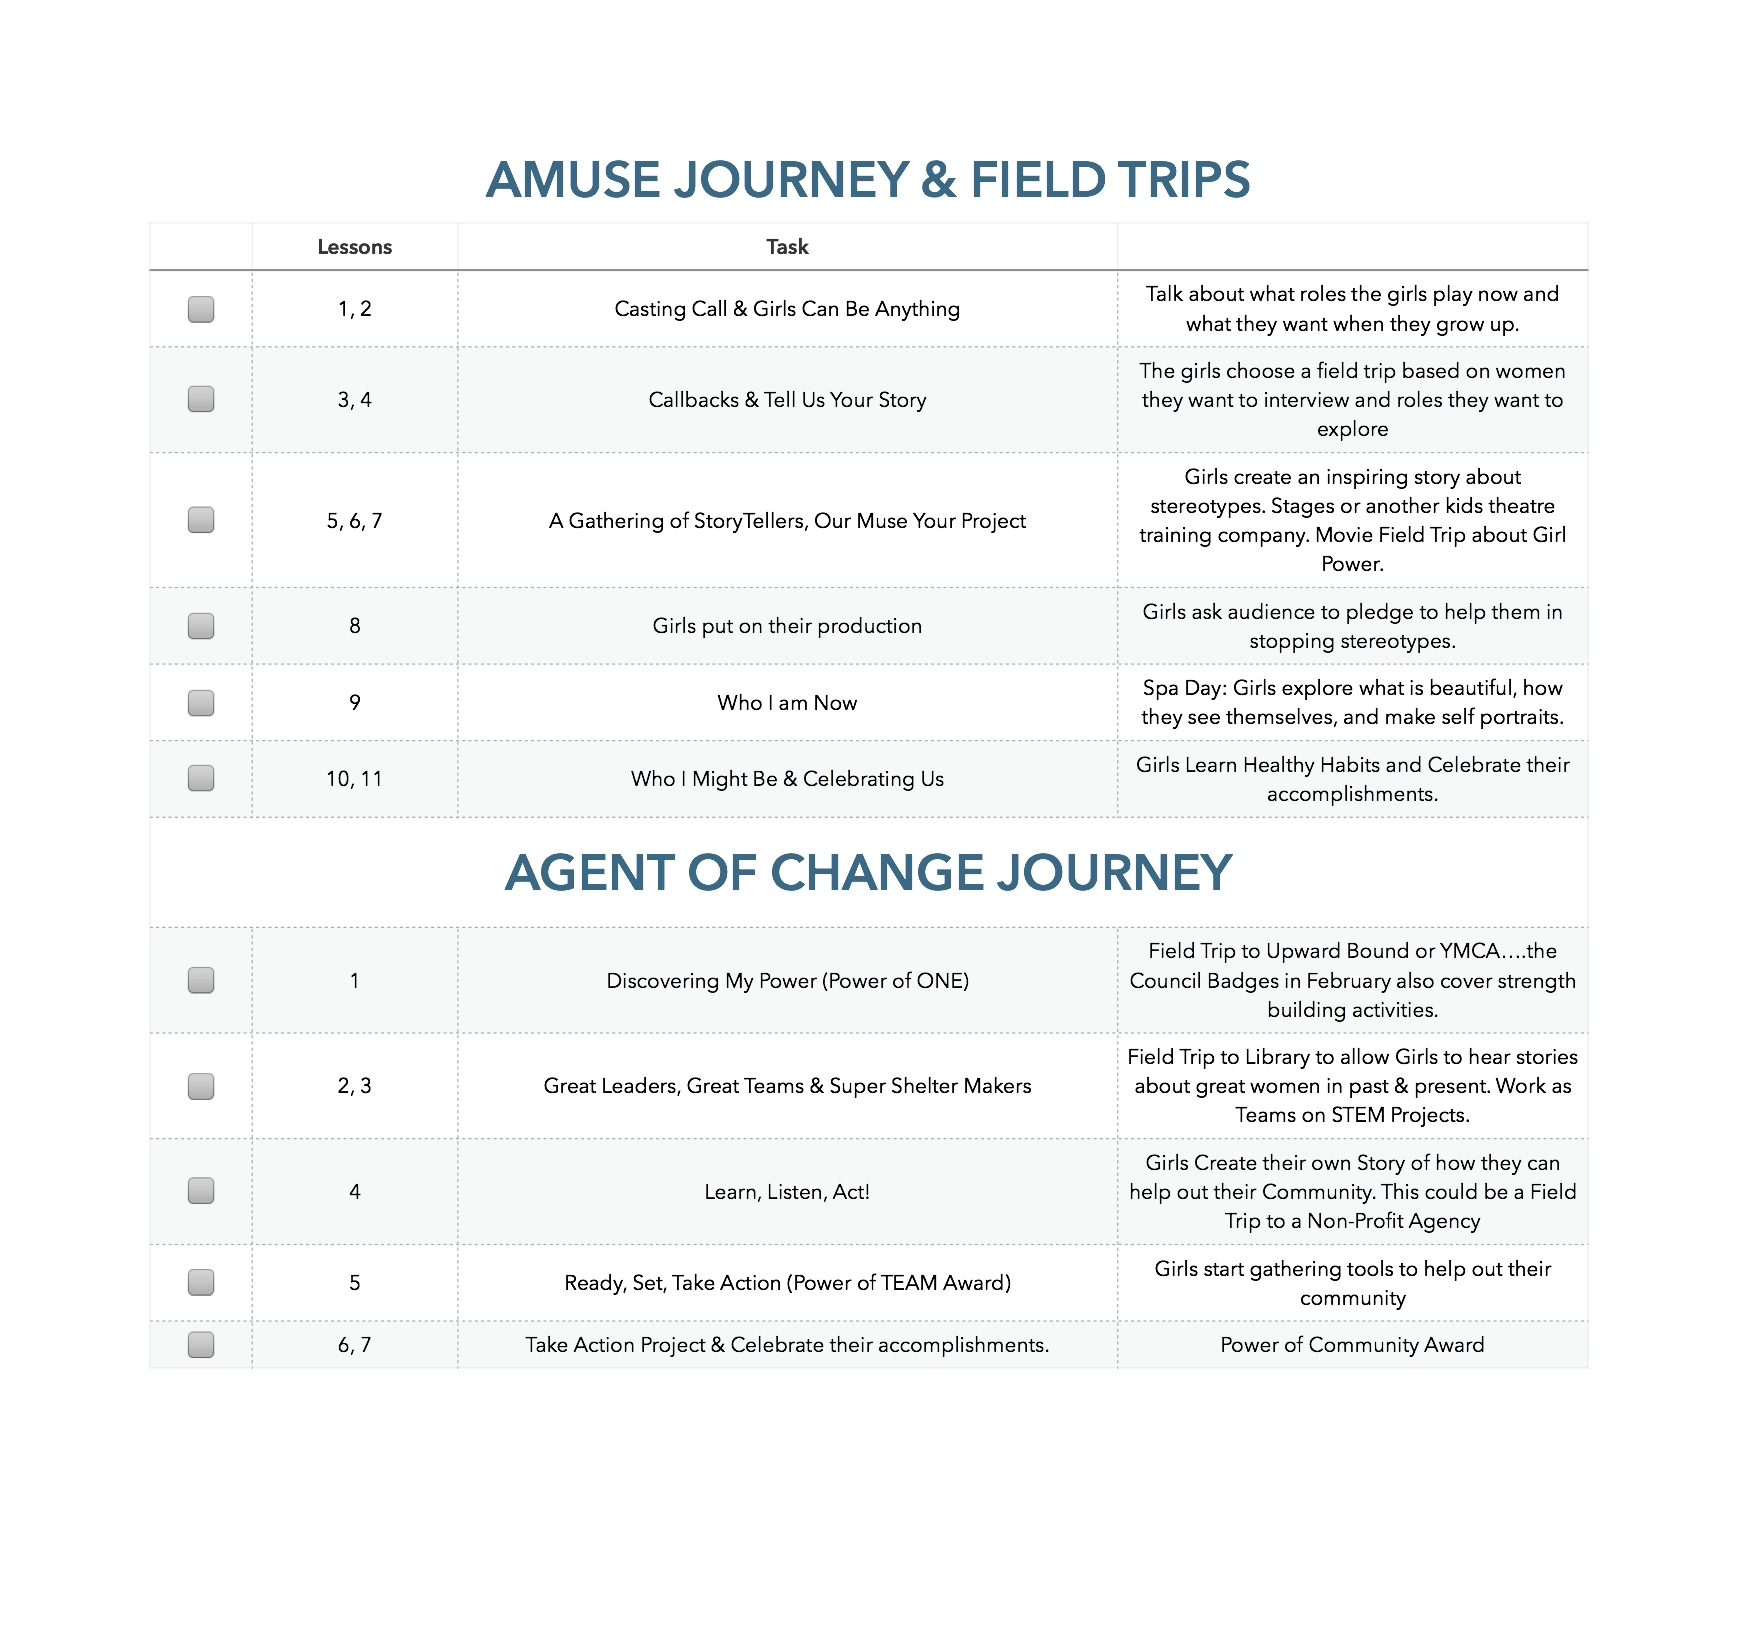 10 Fashionable Girl Scout Field Trip Ideas this is the amuse journey and agents of change just a brief 2020